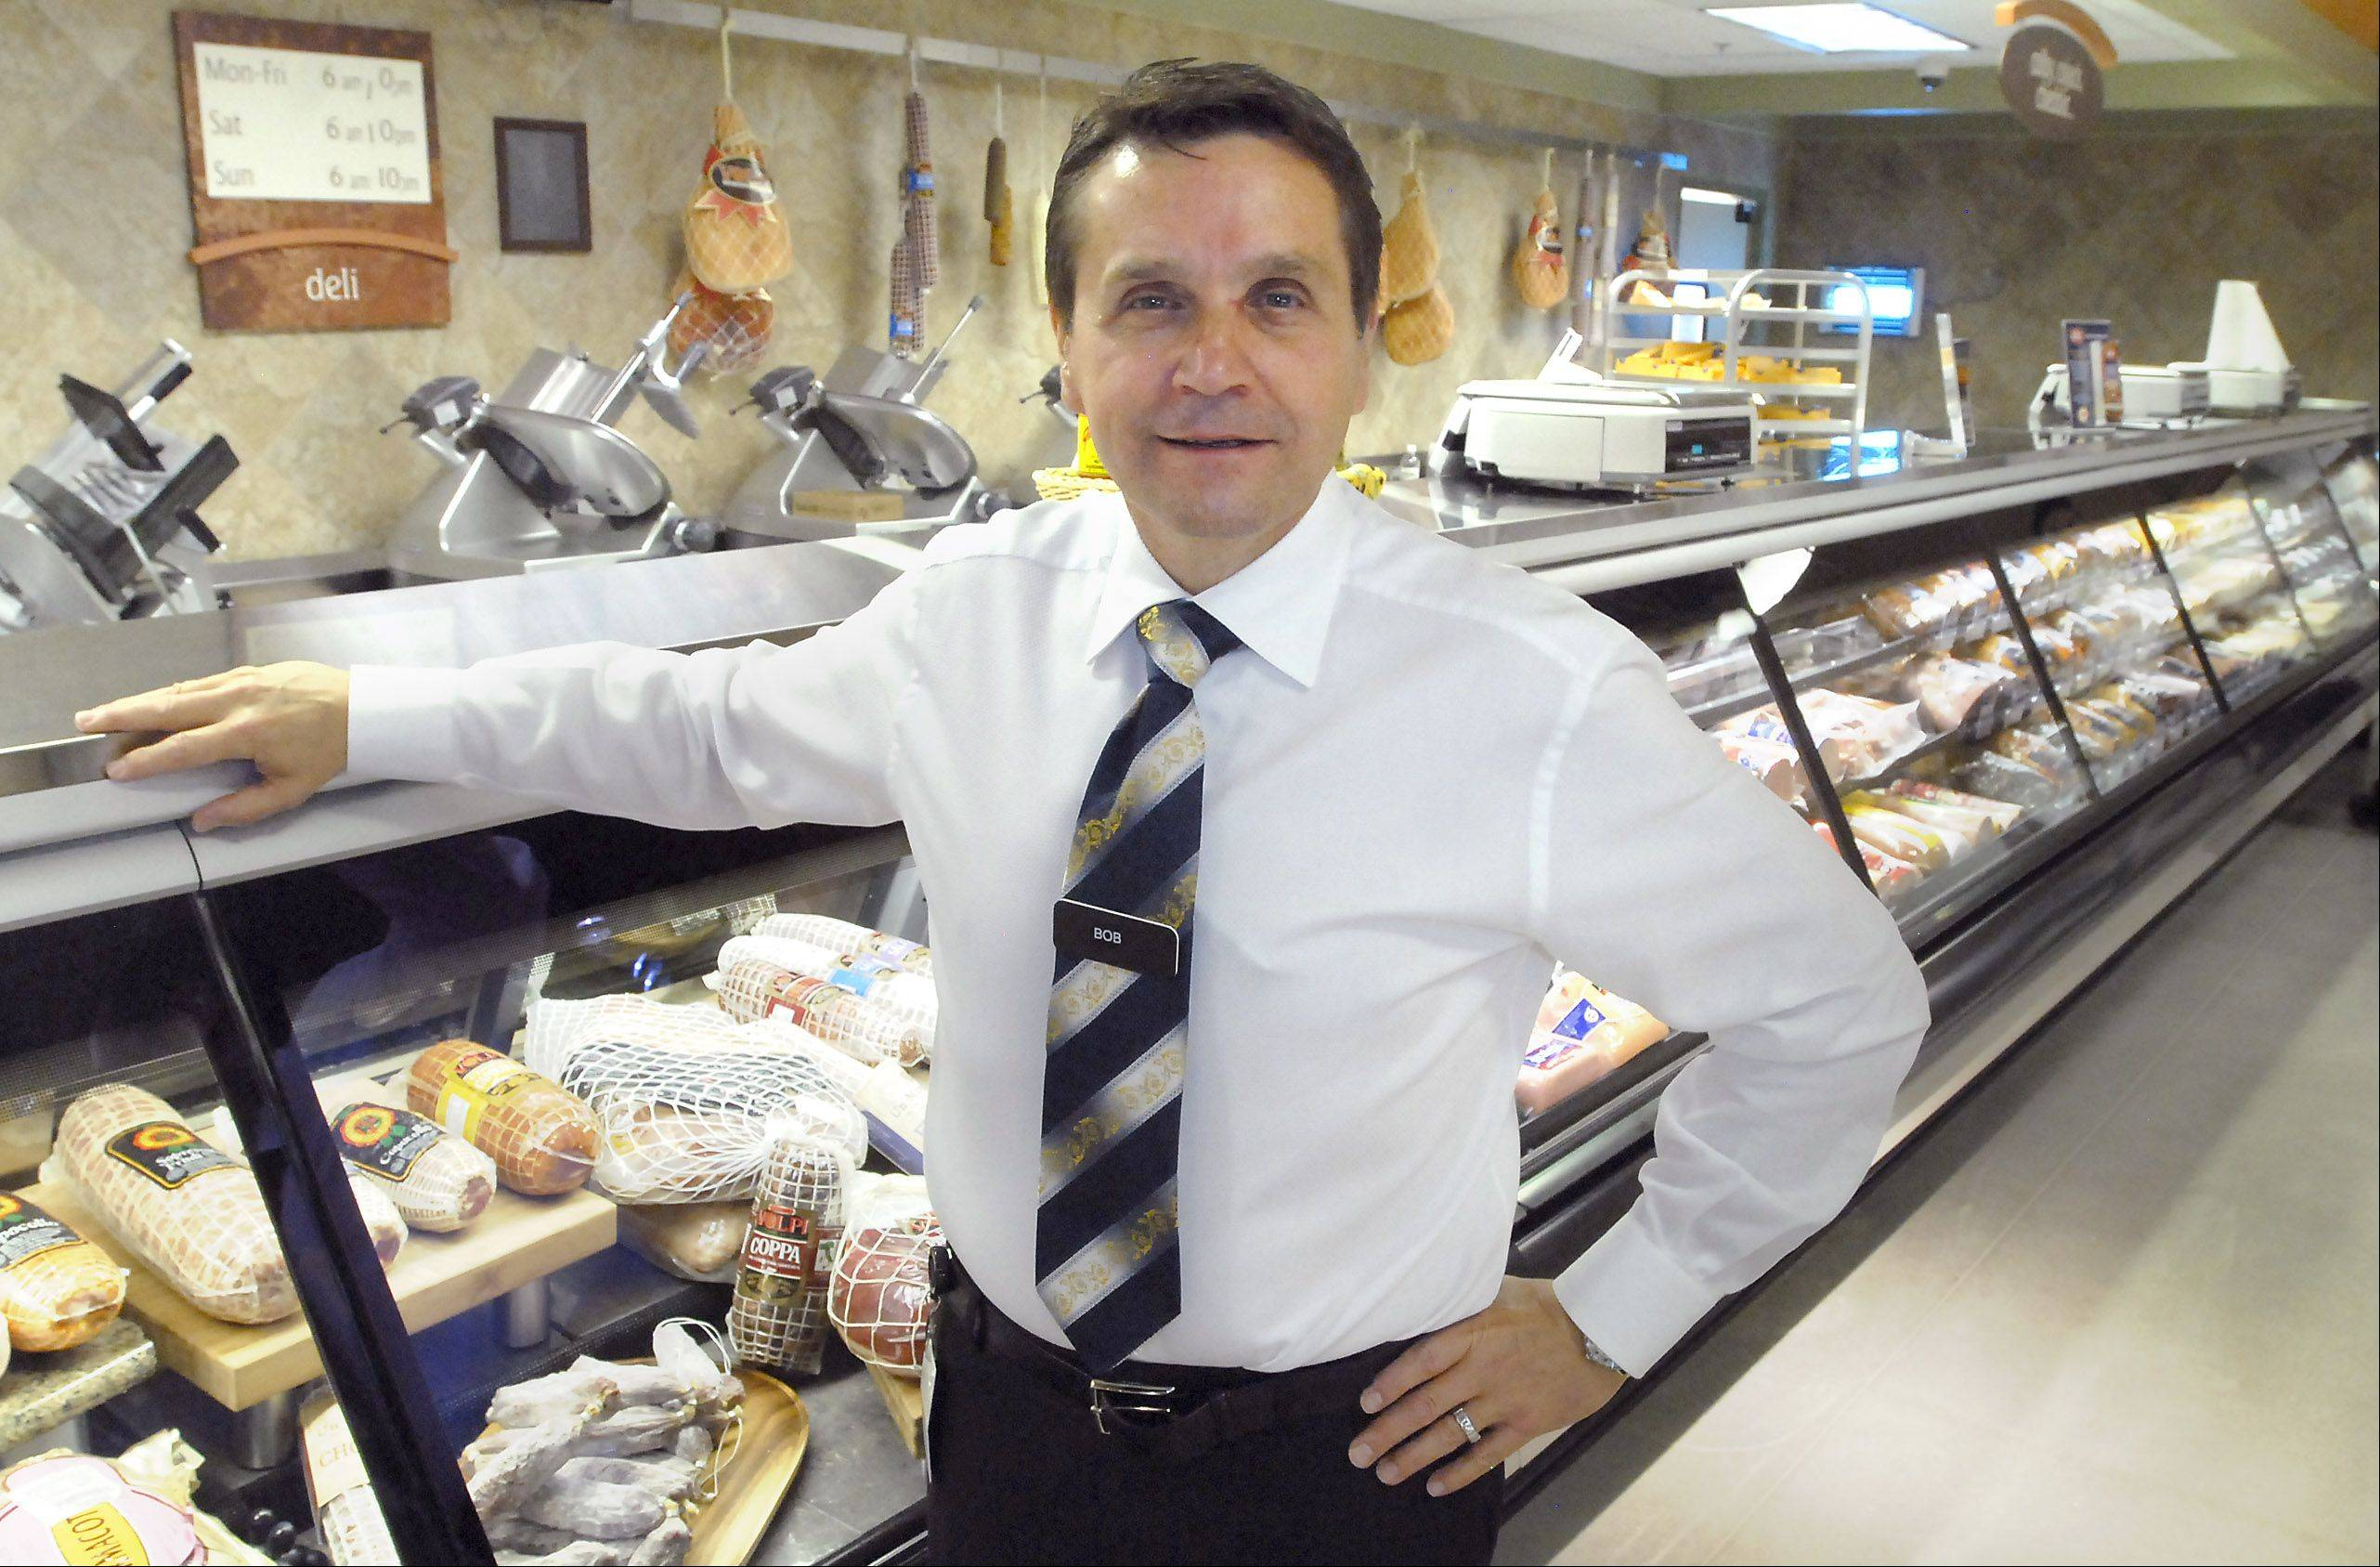 Bob Mariano worked his way up at Dominick's, from deli clerk in the late 1960s, to president and CEO in the 1990s. Now the head of Roundy's Supermarkets, Mariano is bringing his self-named store, Mariano's, to 11 soon-to-be-closed Dominick's locations in the Chicago area.